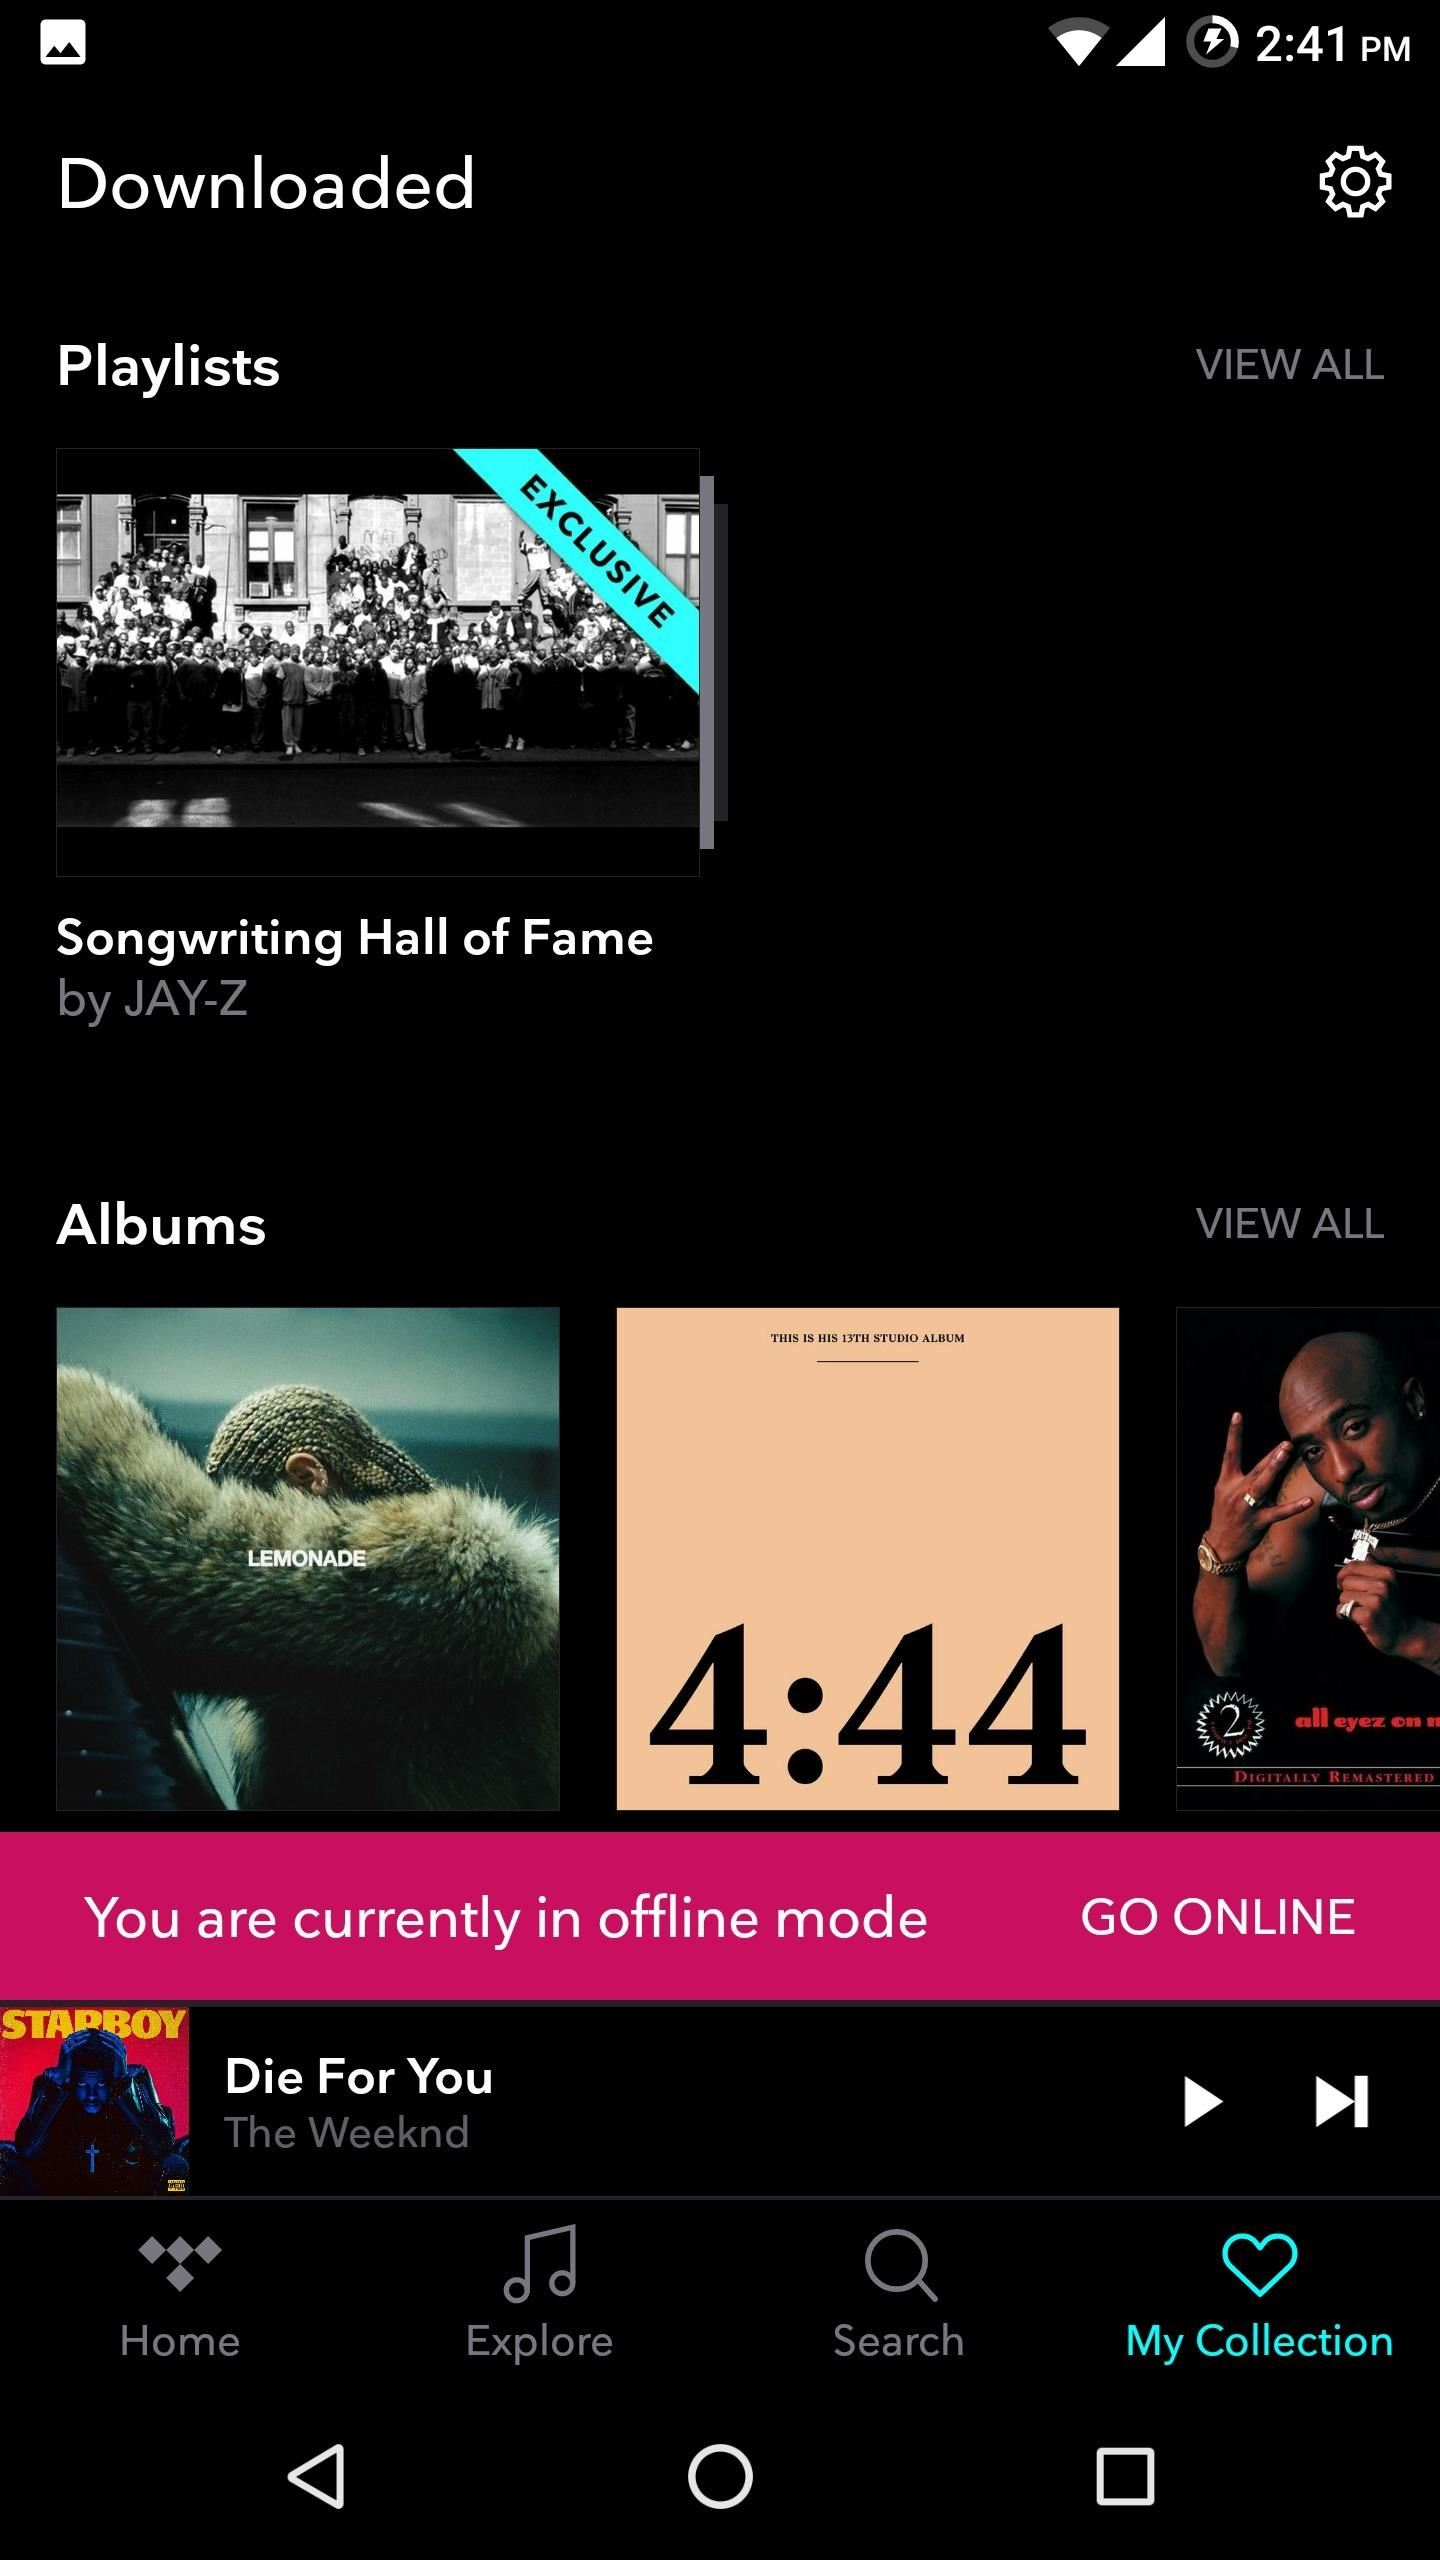 TIDAL 101: How to Download Albums & Playlists for Offline Playback